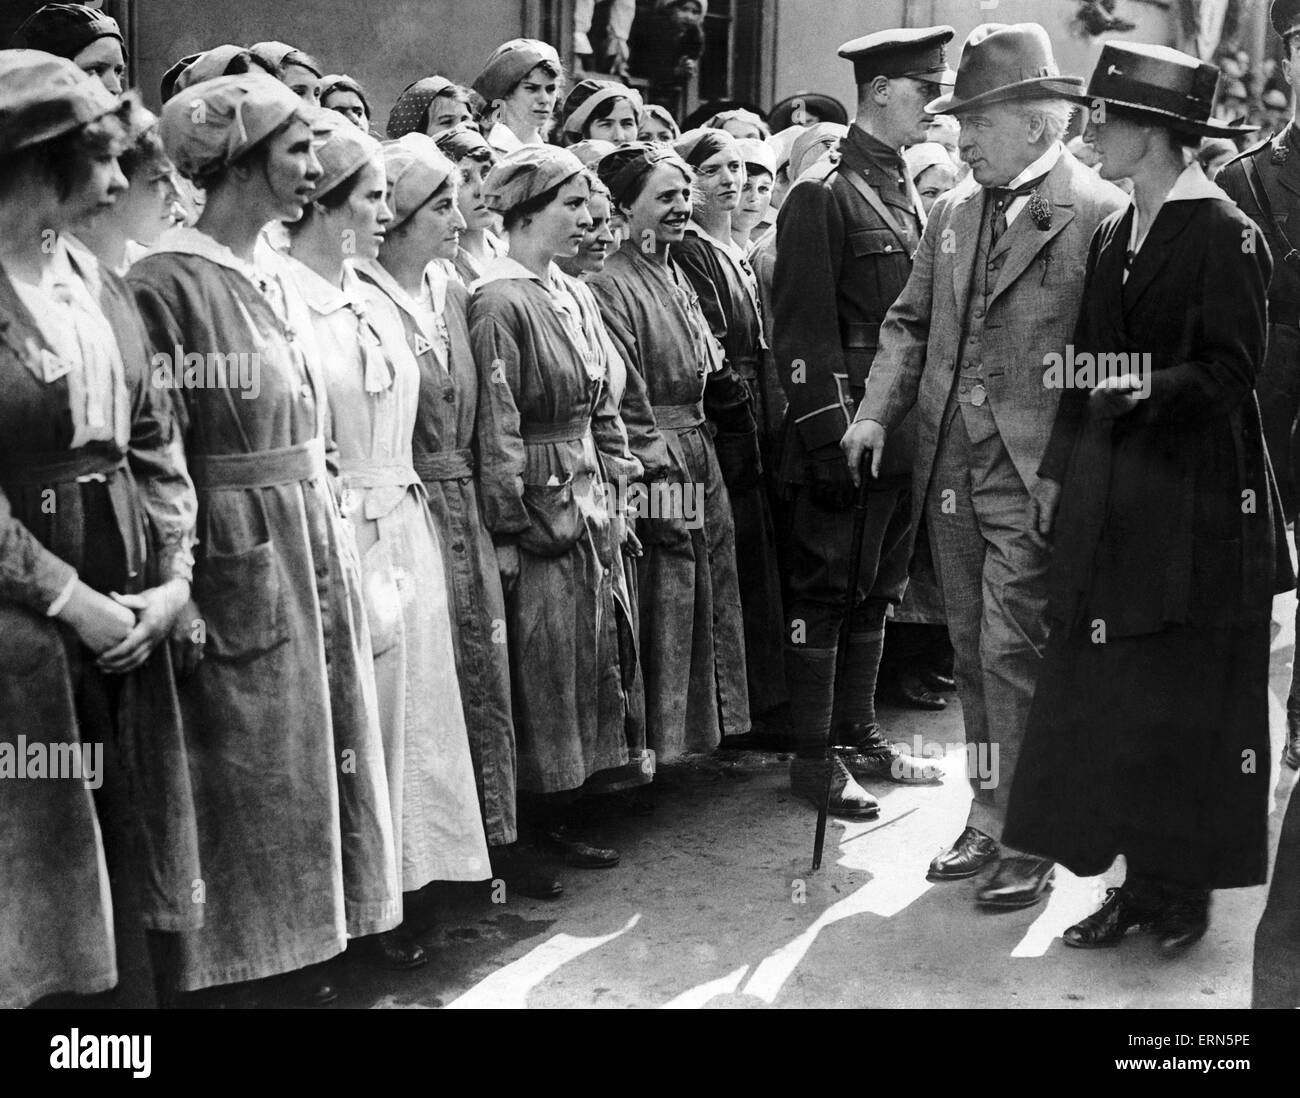 British Prime Minister David Lloyd George inspecting munitions workers during a visit to a fatory in Neath, Wales. - Stock Image